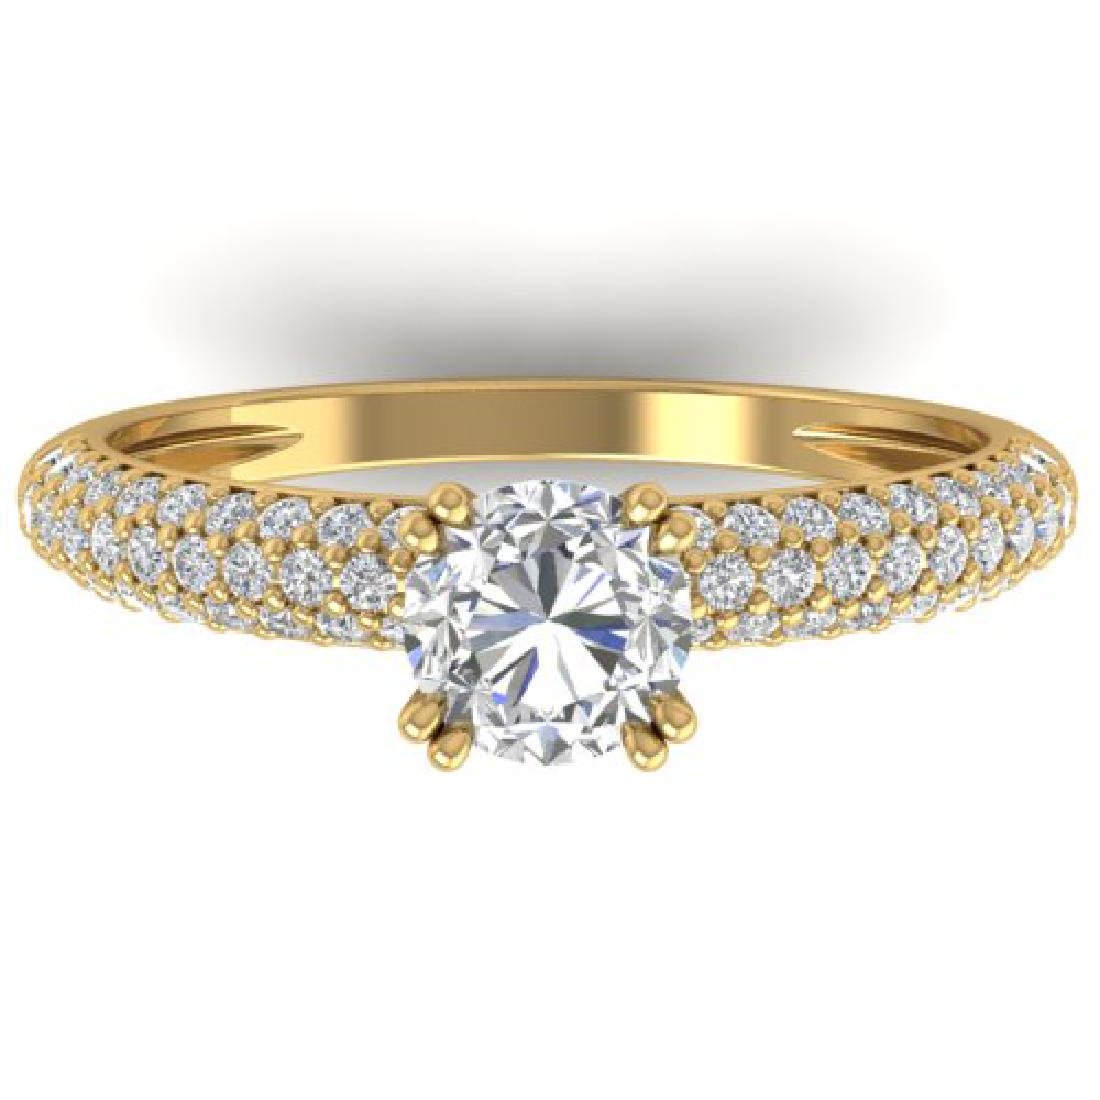 1.4 CTW Certified VS/SI Diamond Solitaire Art Deco